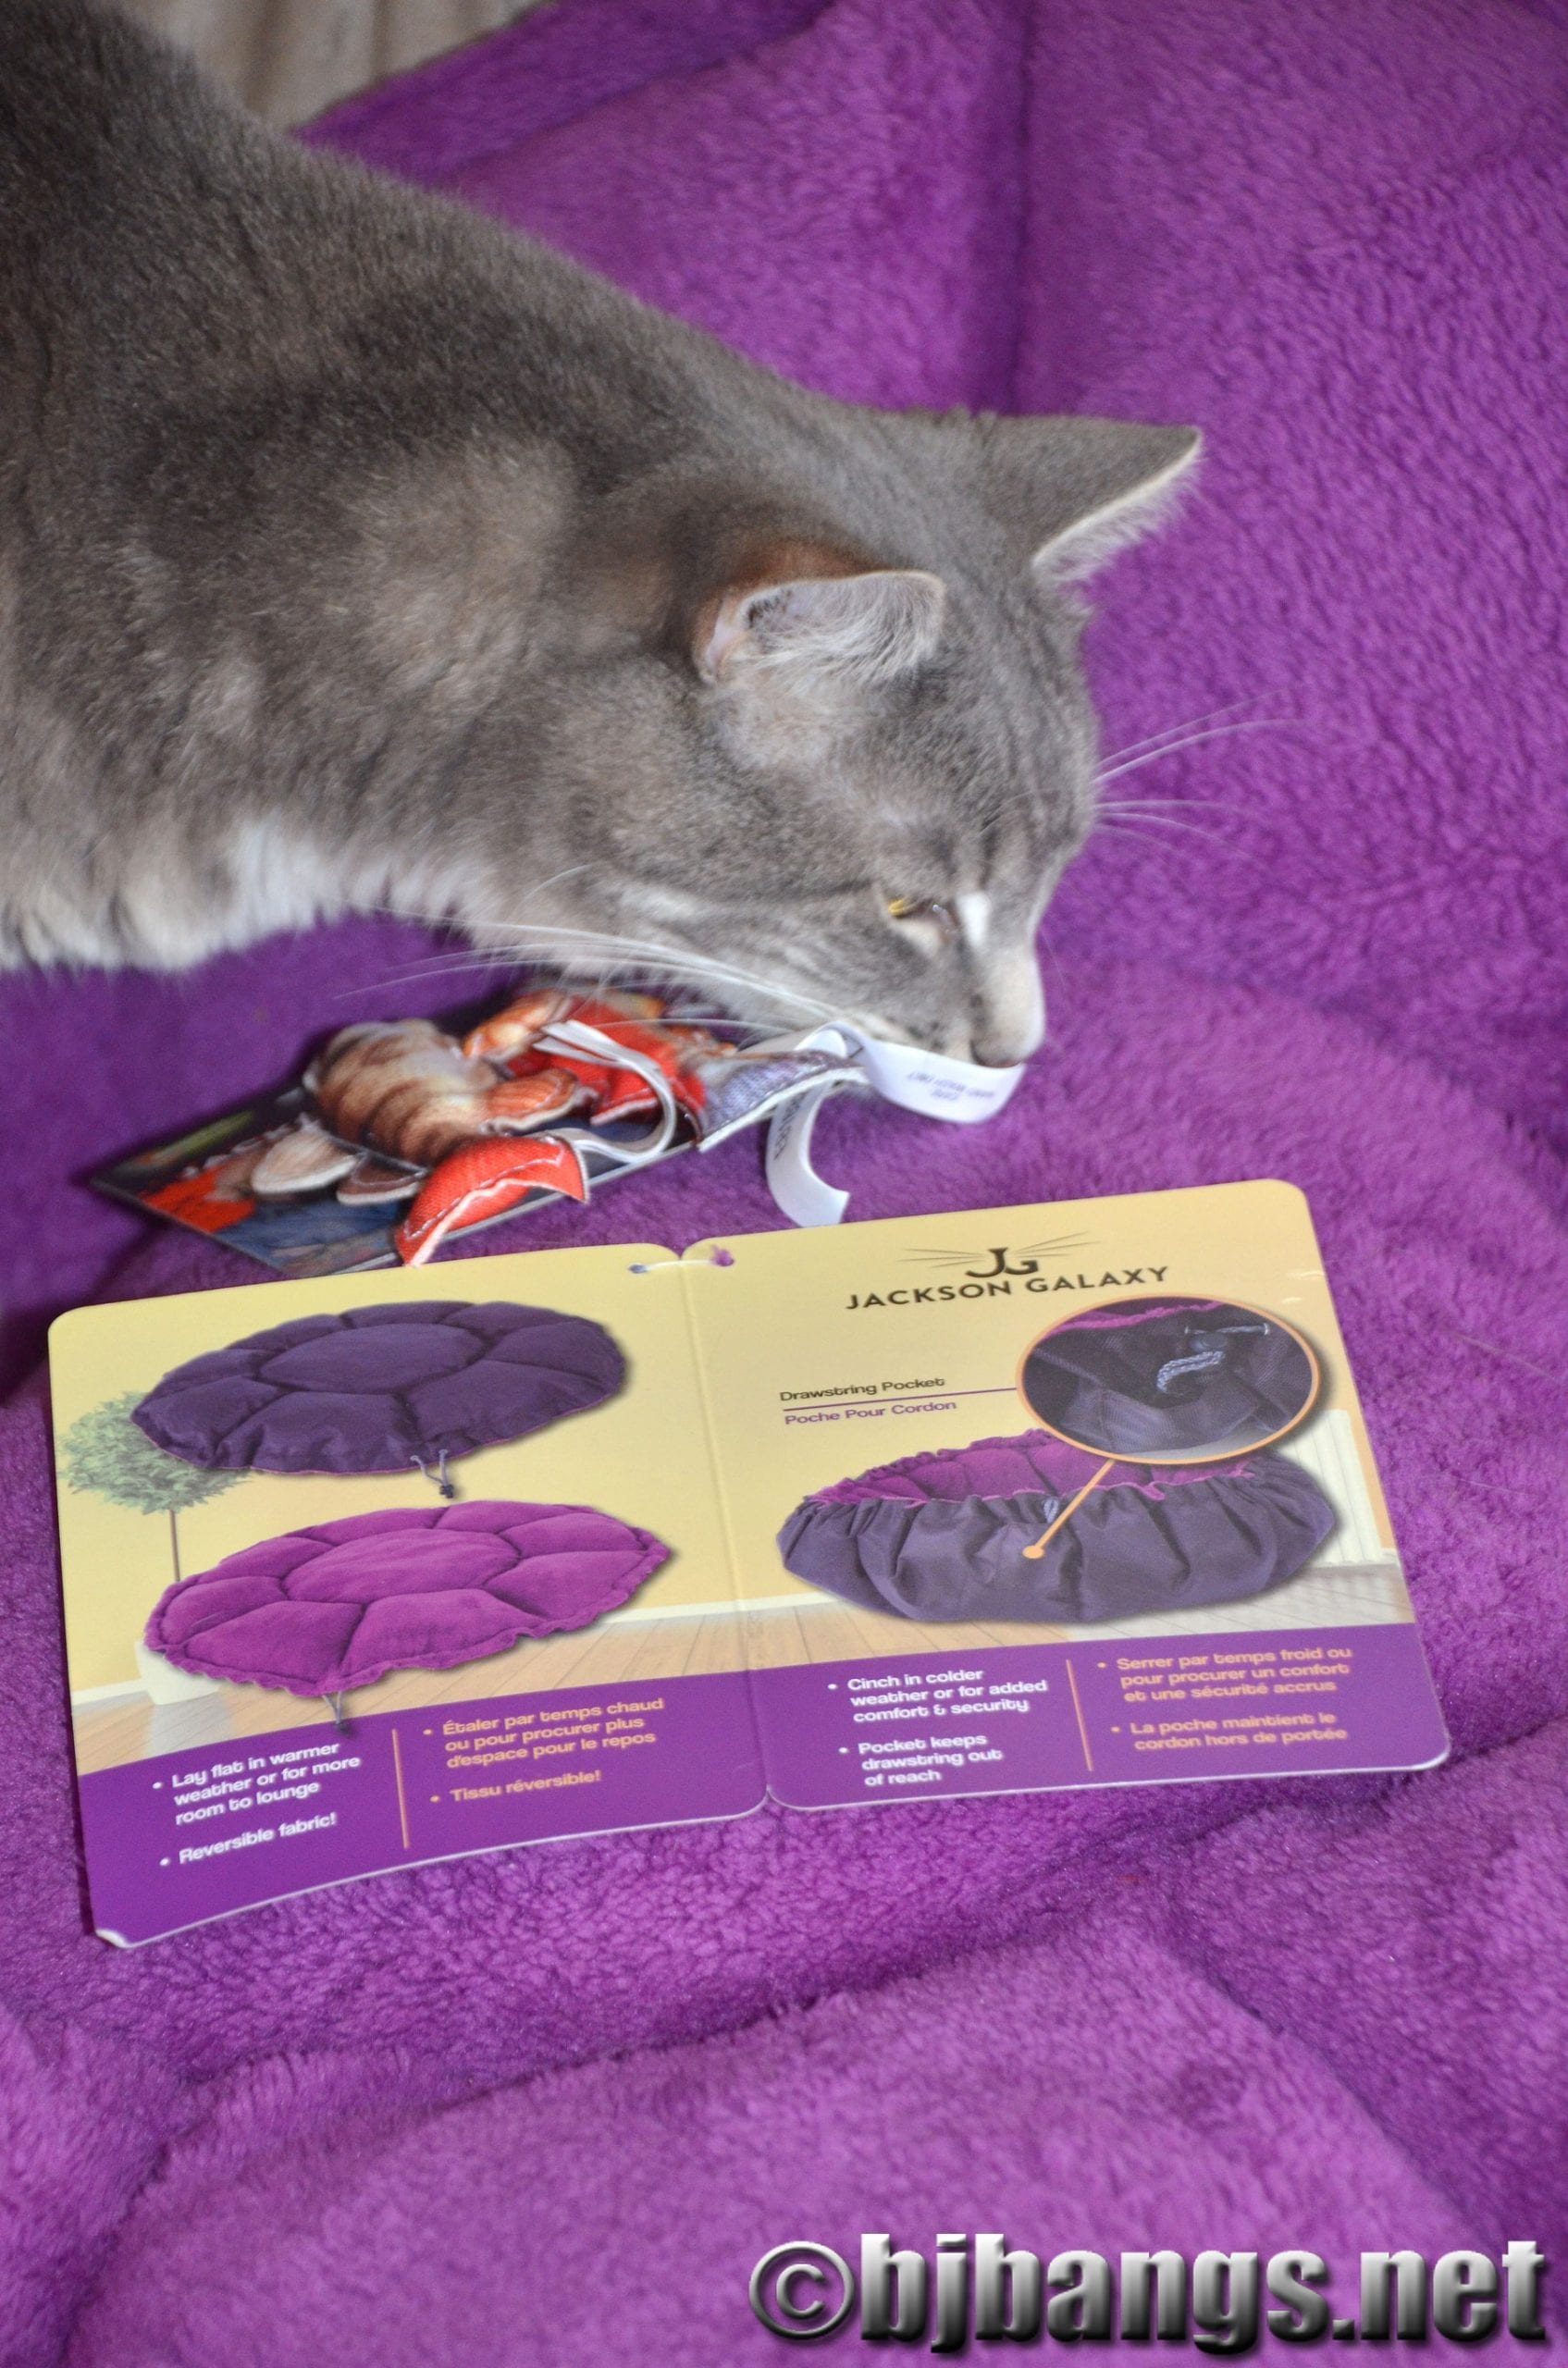 Jackson galaxy petm 24 paws for reflection for Jackson galaxy cat products